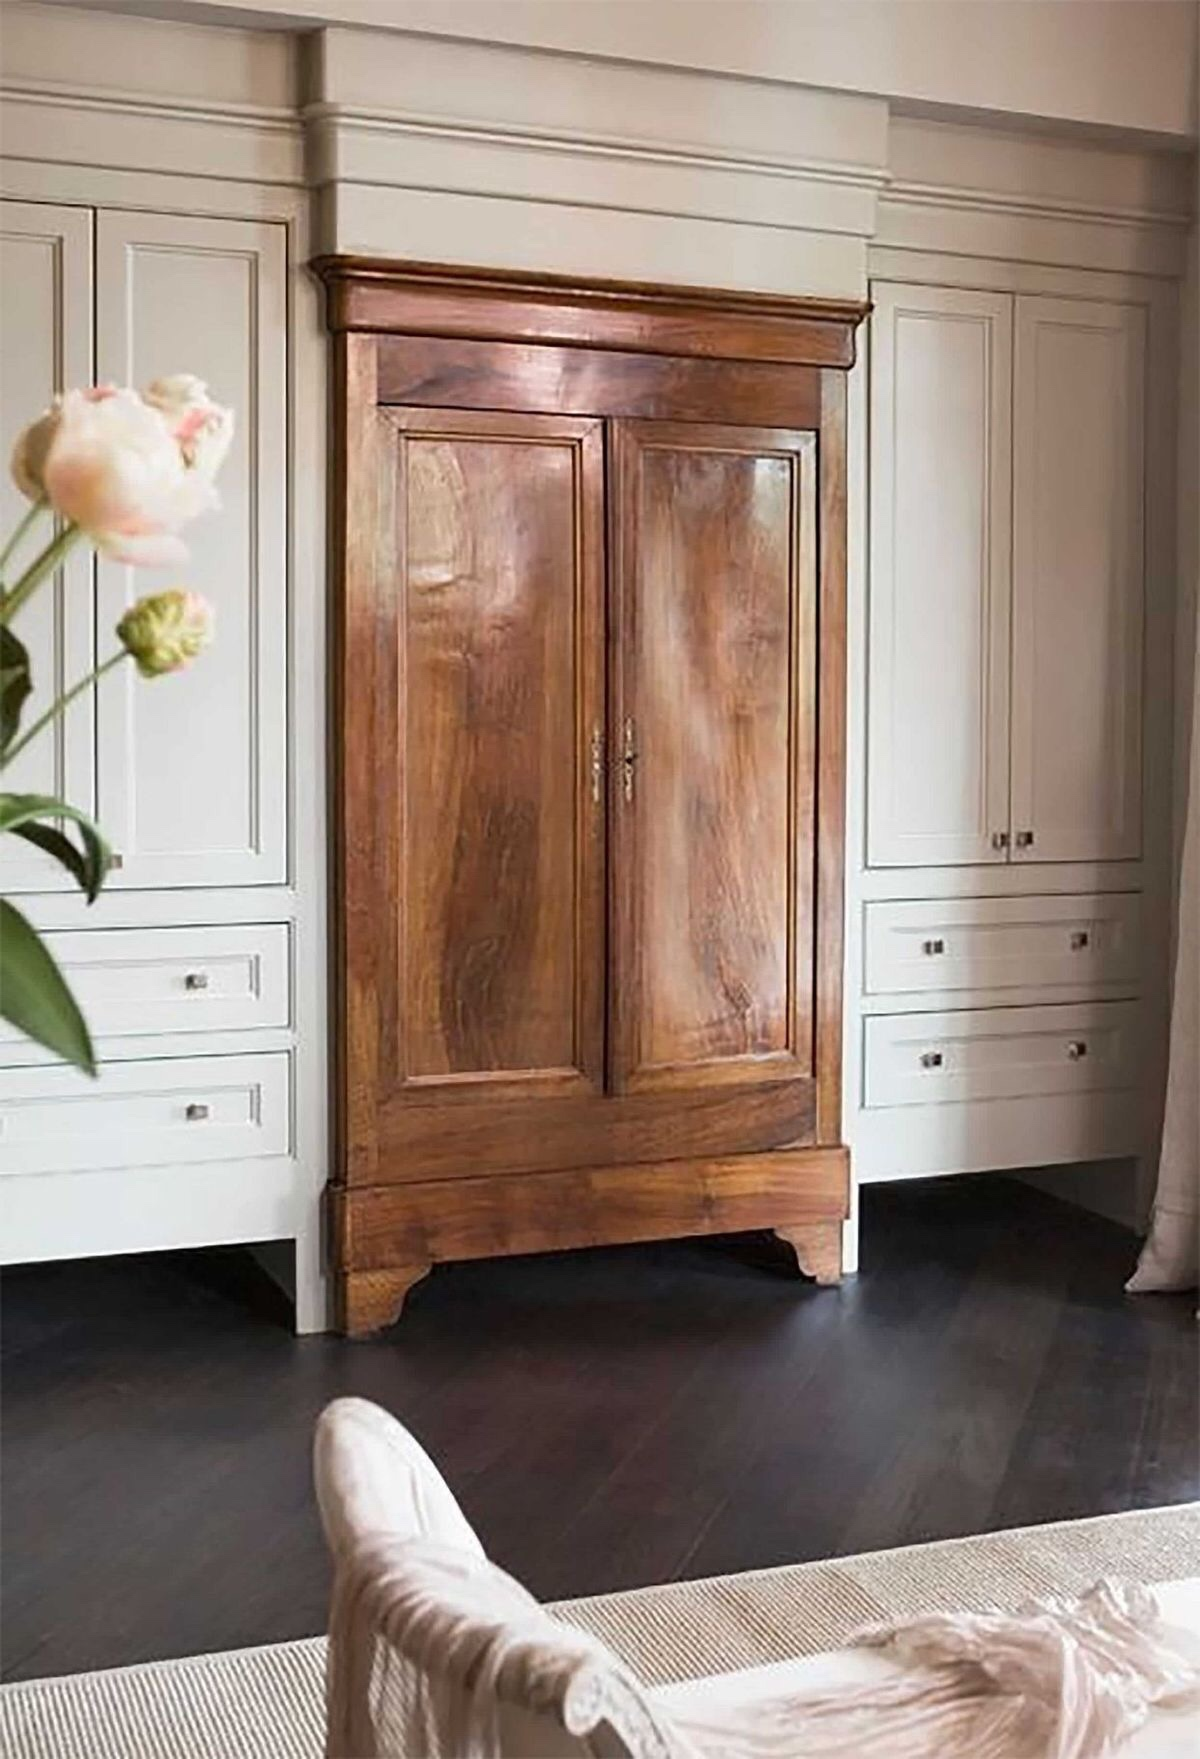 Beautiful old armoire incorporated in a new build custom cabinets,so chic and fresh!